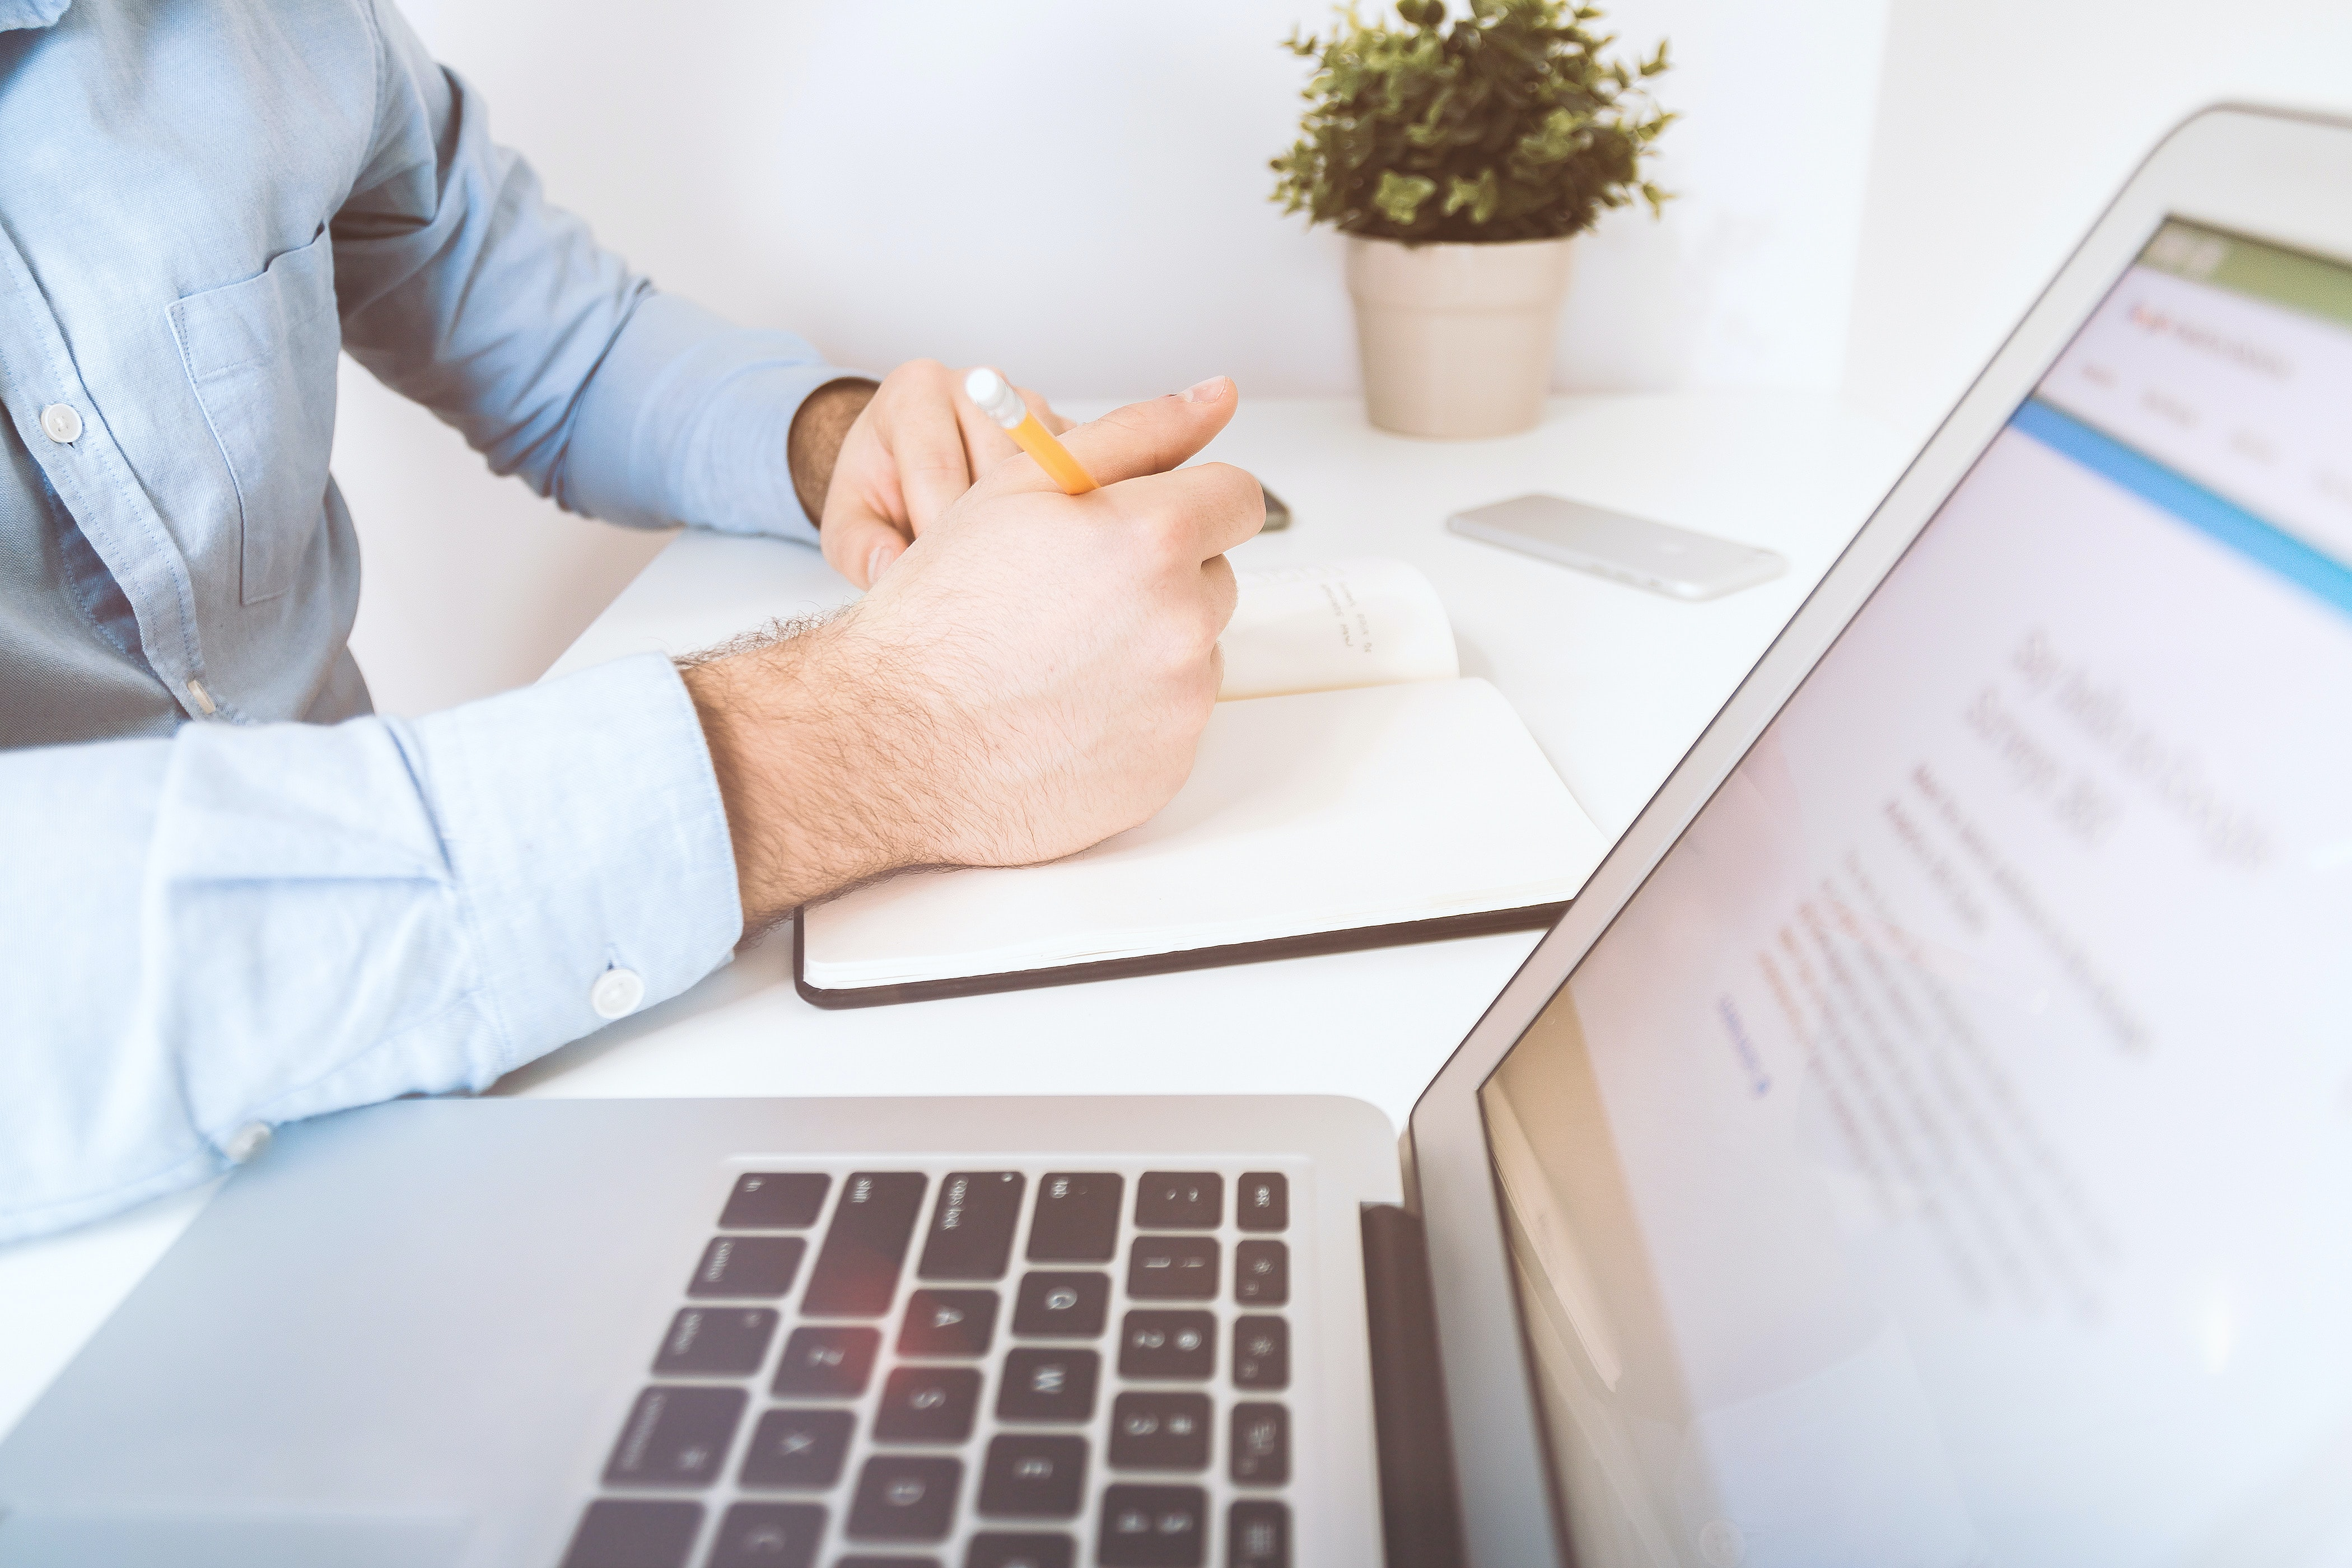 How to List Publications on a Resume